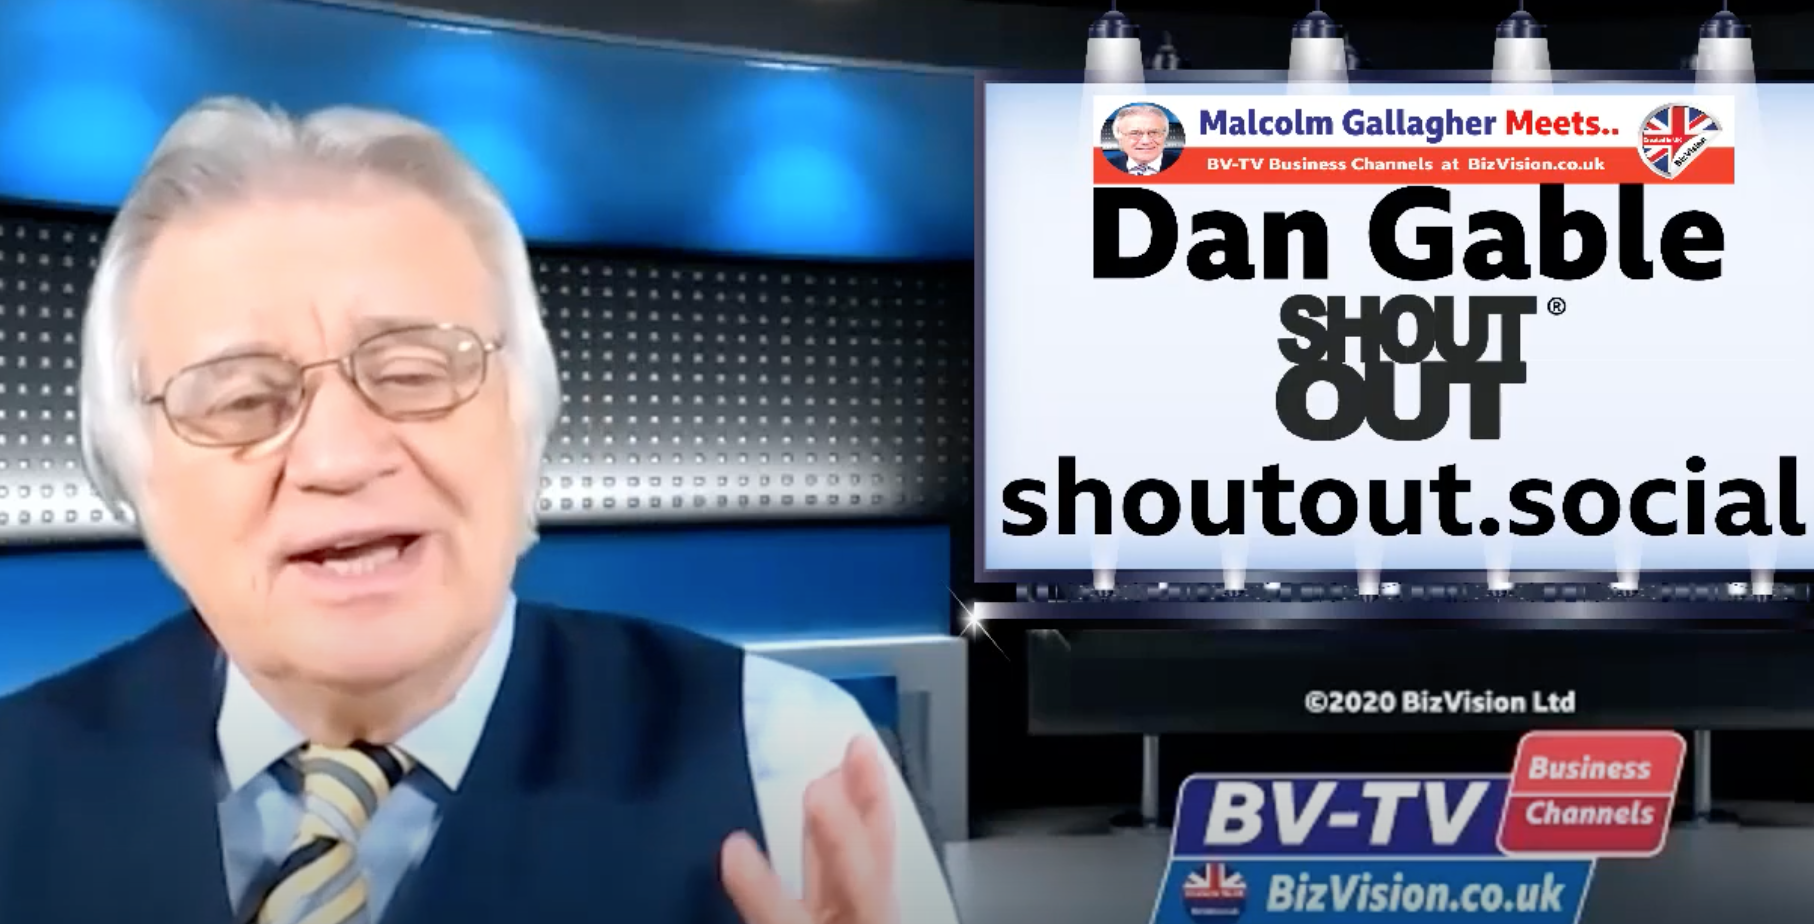 ShoutOut Founder Dan Gable- Interview with BB-TV Sales & Marketing Show host Malcolm Gallagher